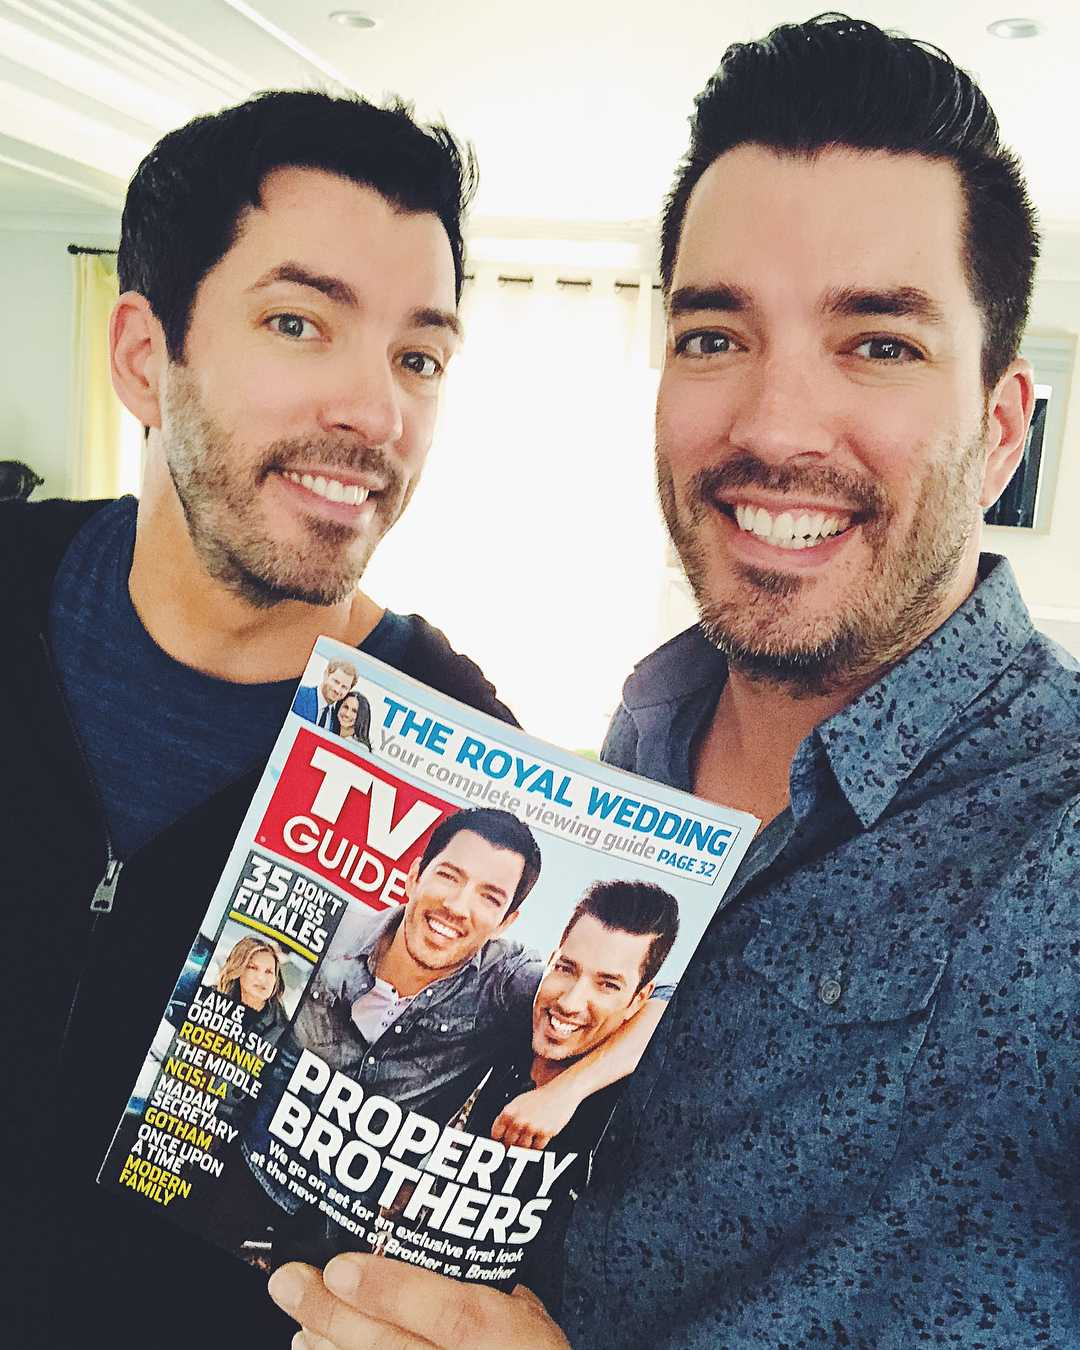 Property Brothers hosts, Drew and Jonathan Scott